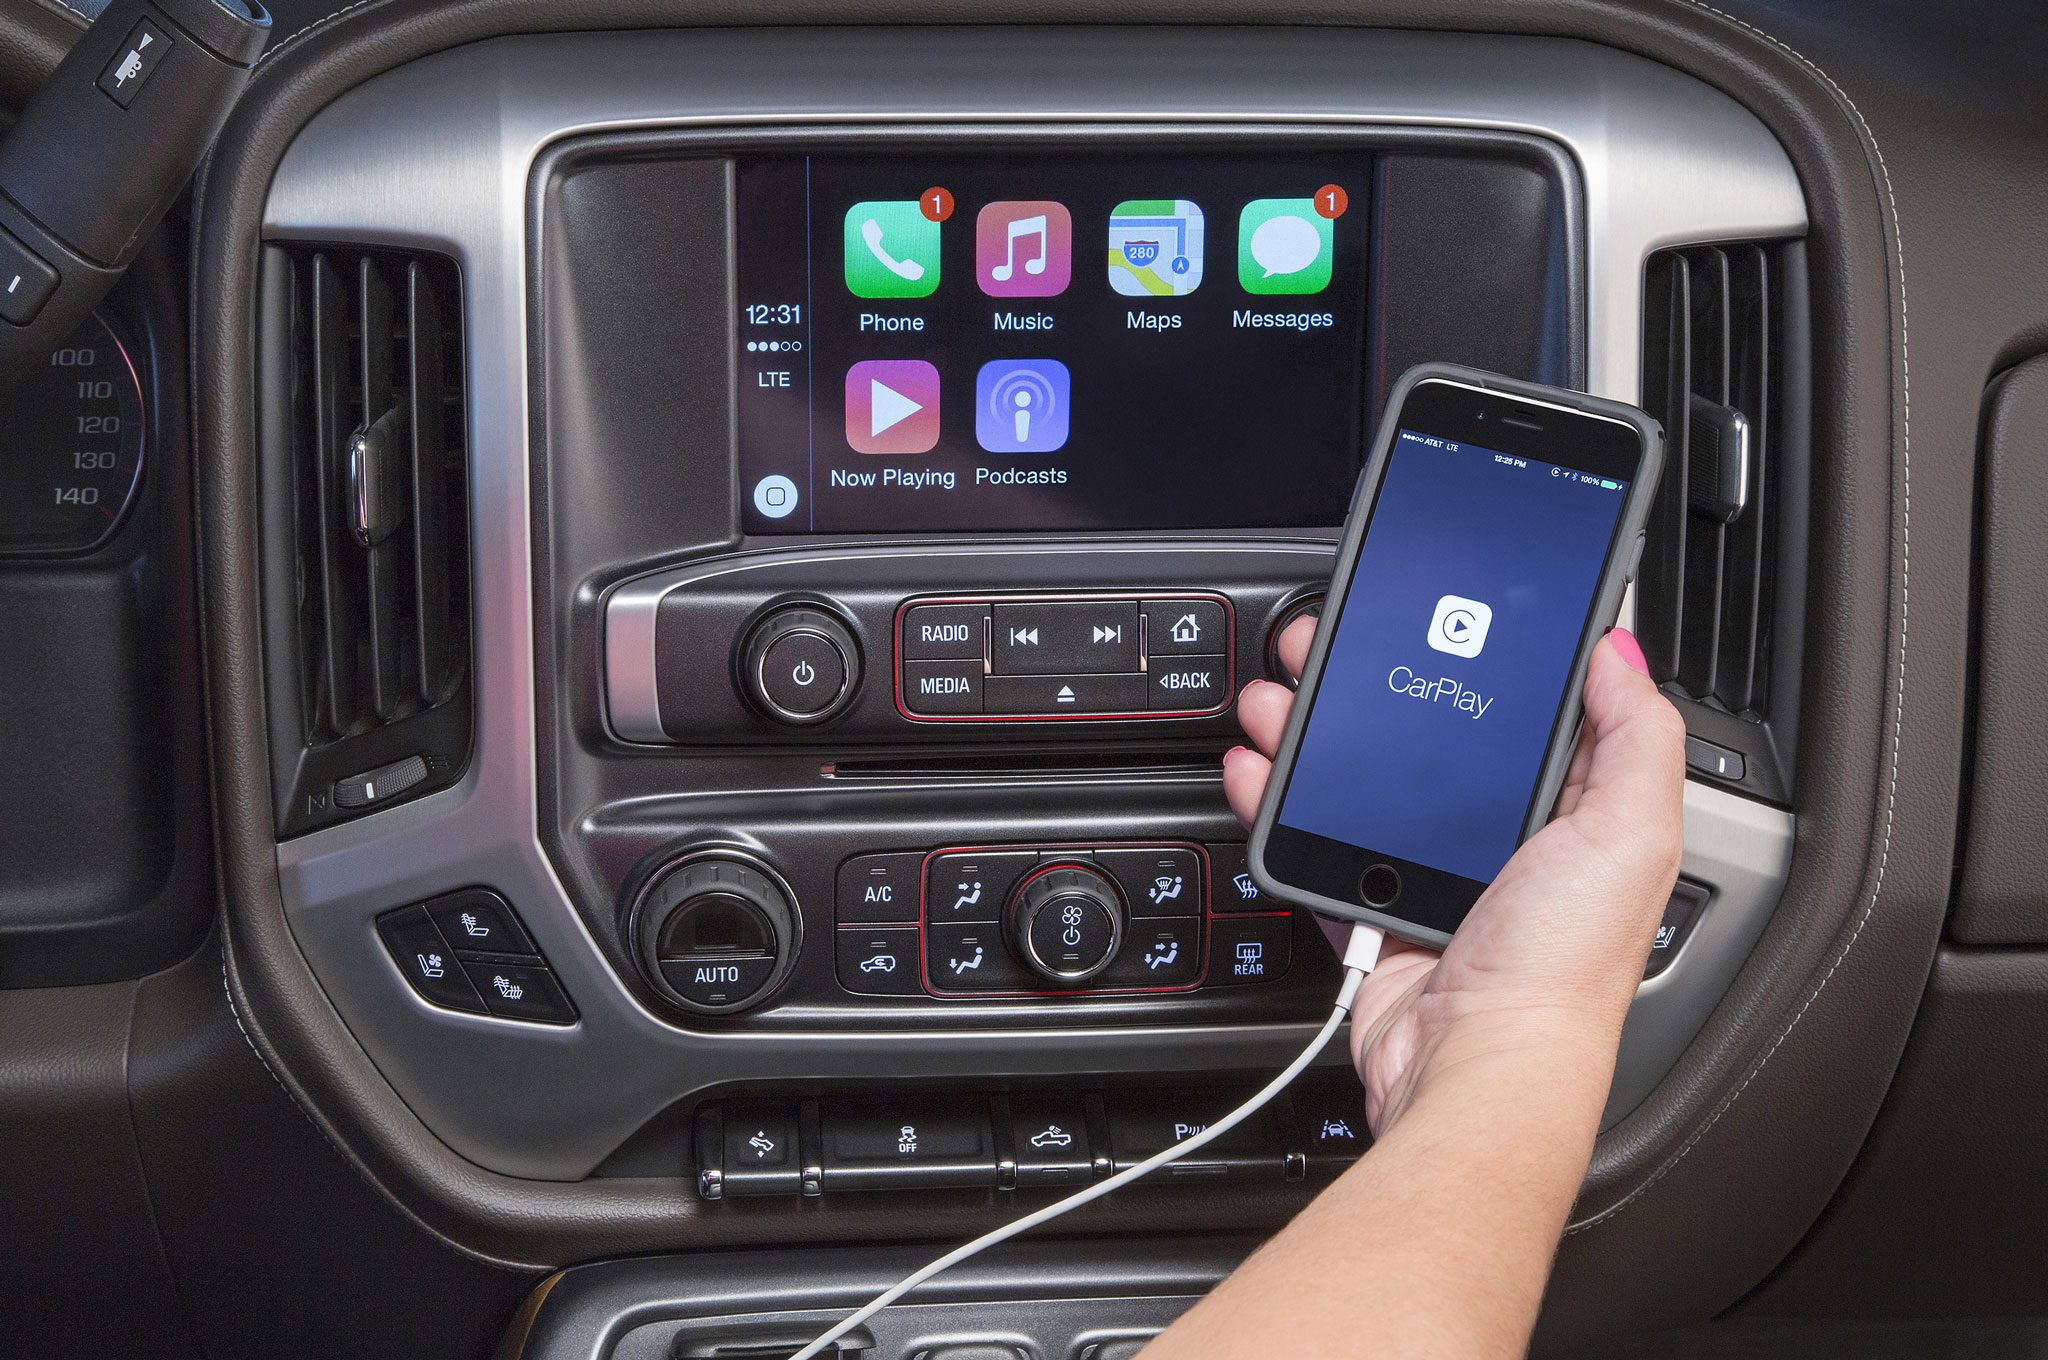 Buick Gmc Introduce Apple Carplay On 2016 Models Motor Trend Automotive Software Runaway Power Content From Electronic Design